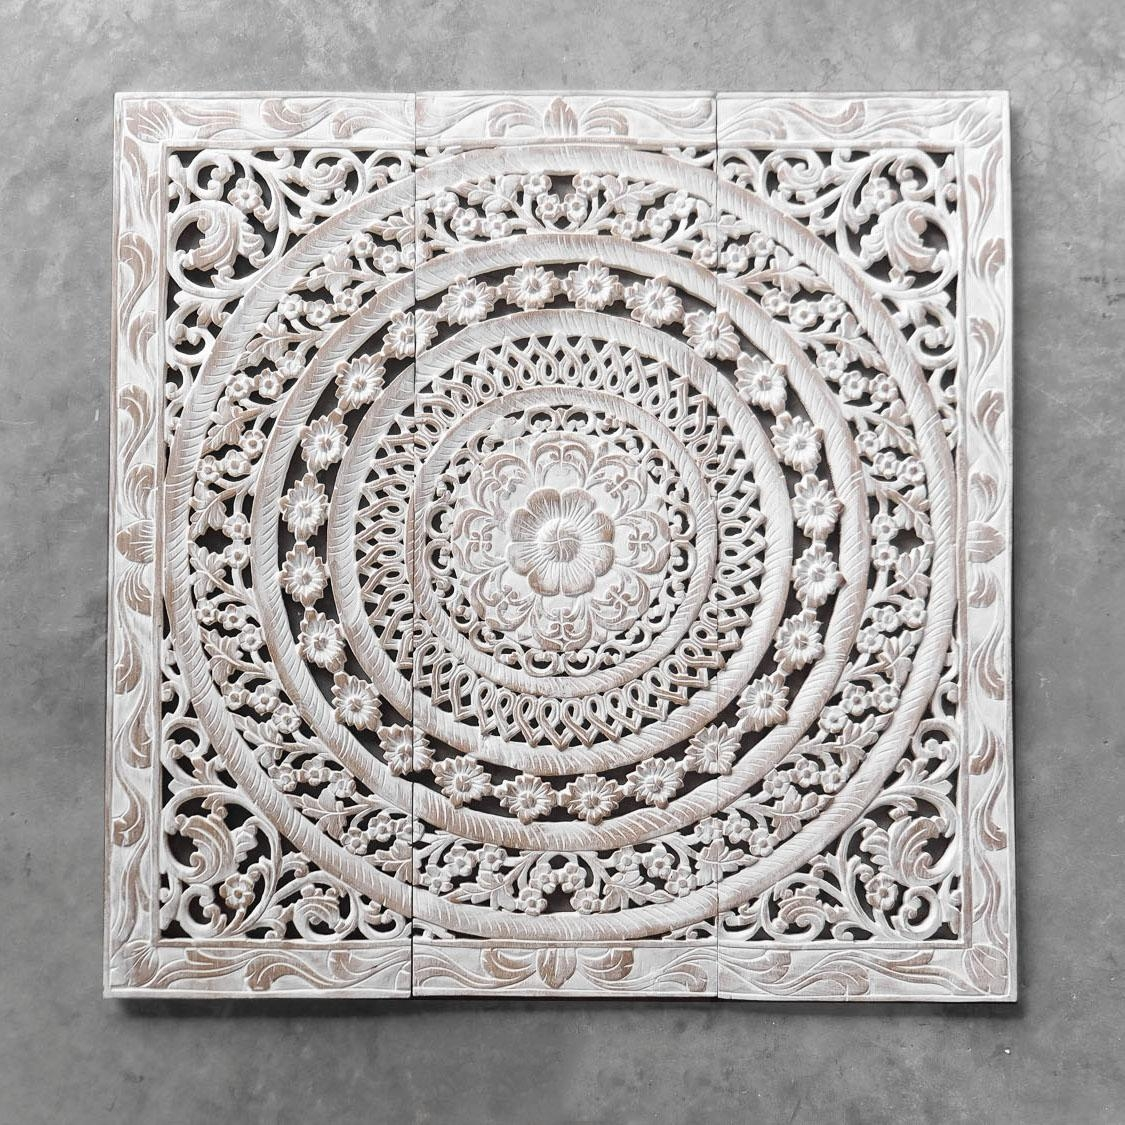 Moroccan Decent Wood Carving Wall Art Hanging – Siam Sawadee With Wood Panel Wall Art (View 13 of 20)